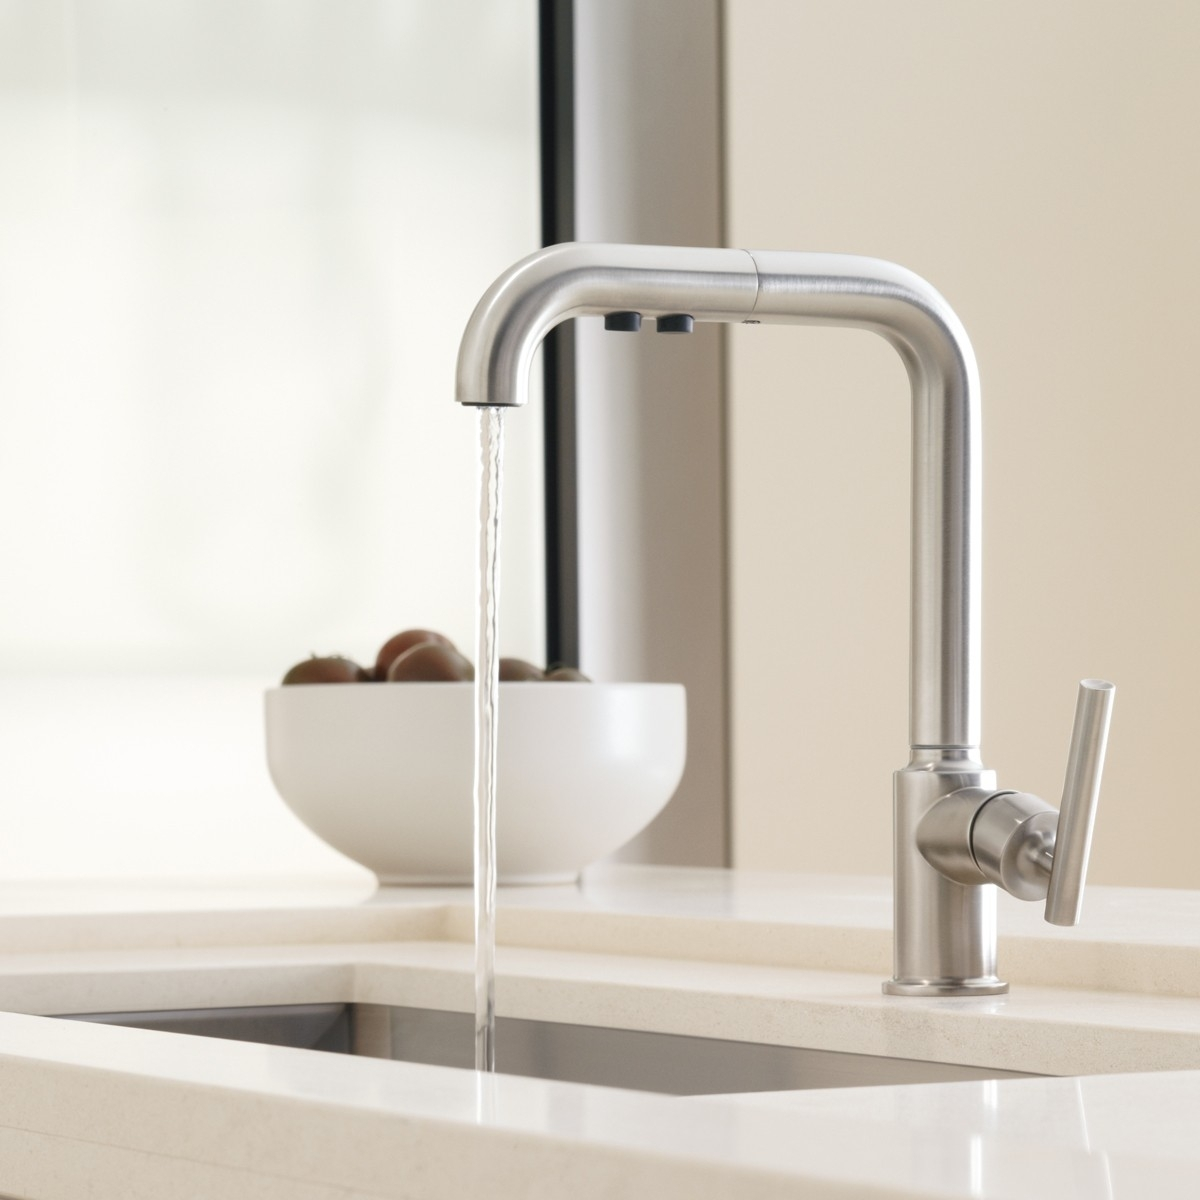 Bathroom Faucets | Bathroom Design | Ayer Massachusetts